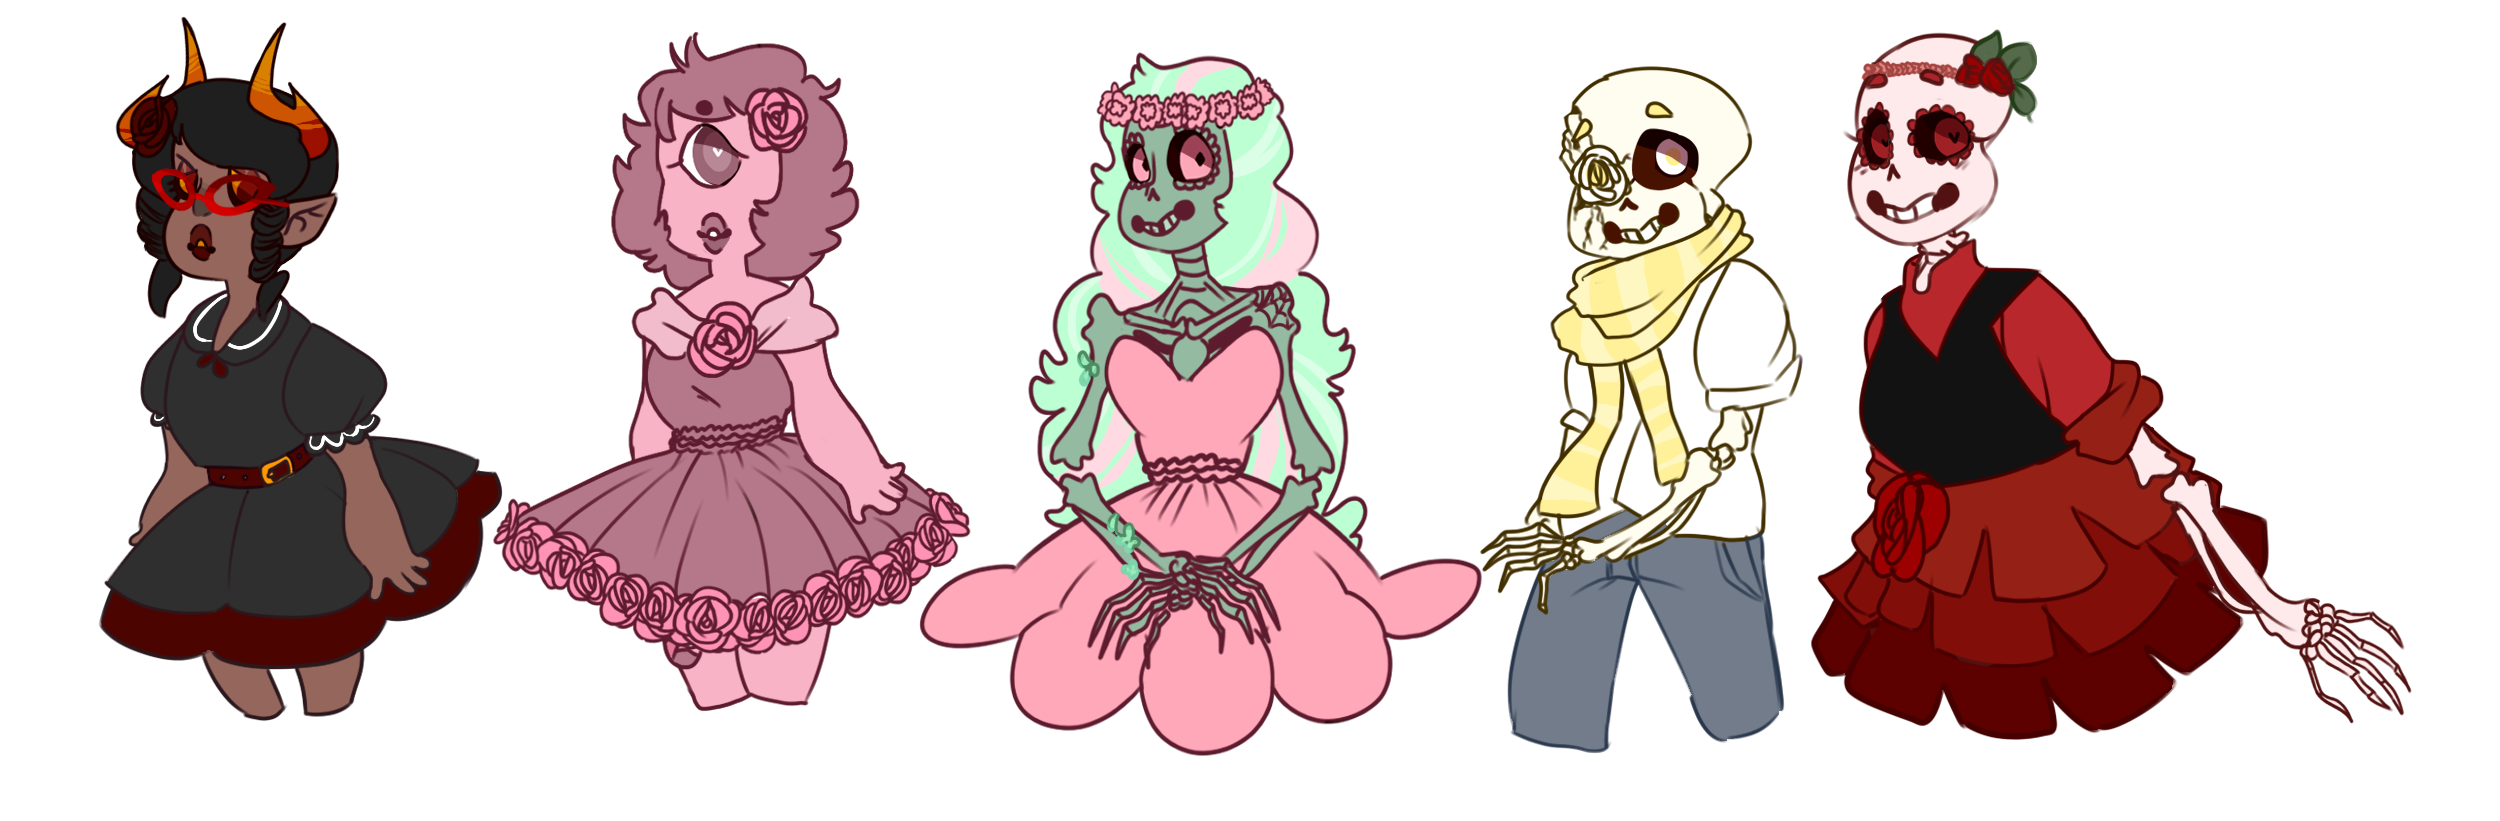 Cute Skeletons, A Pretty Gem And An Adorable Troll by SmasherlovesBunny500